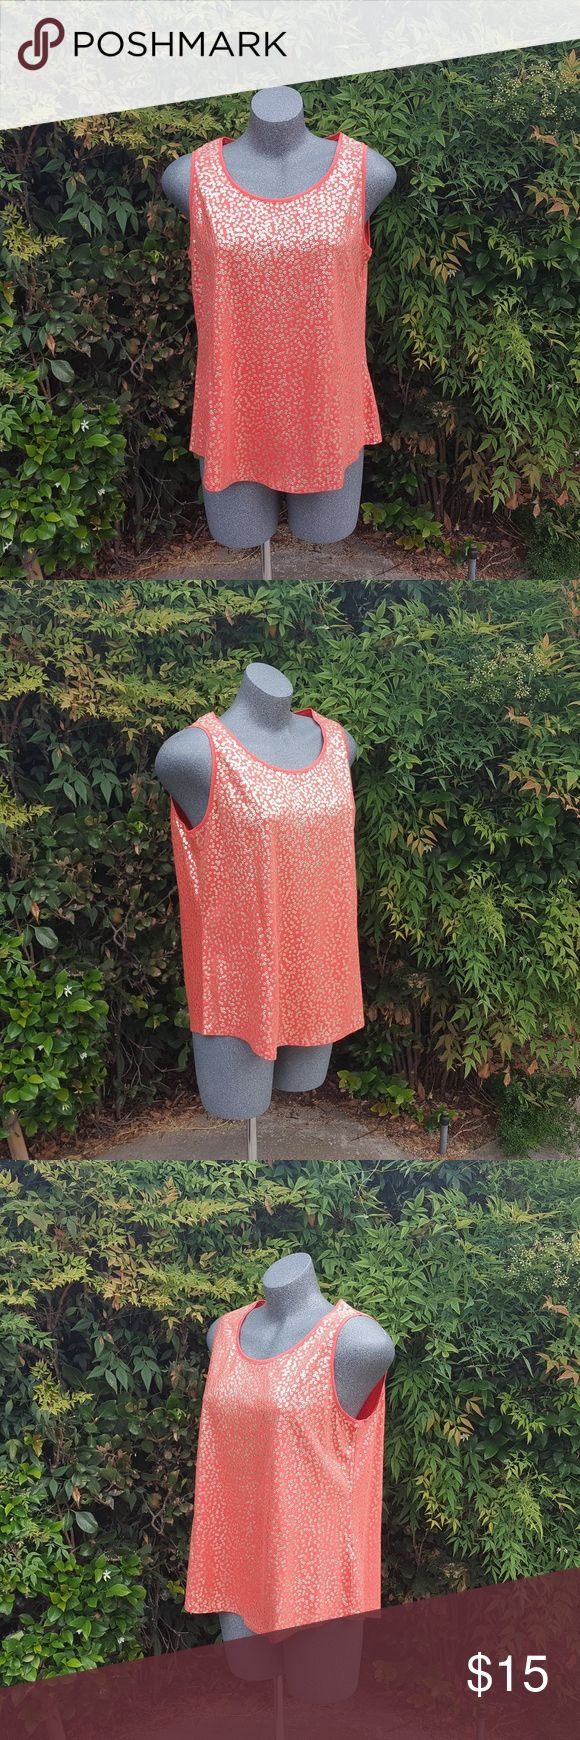 """Chico's Peach Orange Tank Top Size 2 / Large Cute tank top.  Metallic print.  Light stretch.  Fits loose. Color is a peachy orange color.   Not lined.  No stains or rips.  See kast photo for care instructions. Chicos sizing is different so a size 2 is really a size 12/14 or large. Please let me know if you have any questions.   Chest circumference: 41"""" Waist circumference: 42"""" Sweep circumference: 47.5"""" Length: 25.5"""" Strap width: 2.25"""" Strap width:  2.25"""" Sleeve opening: 20.25"""" Content: 60%…"""